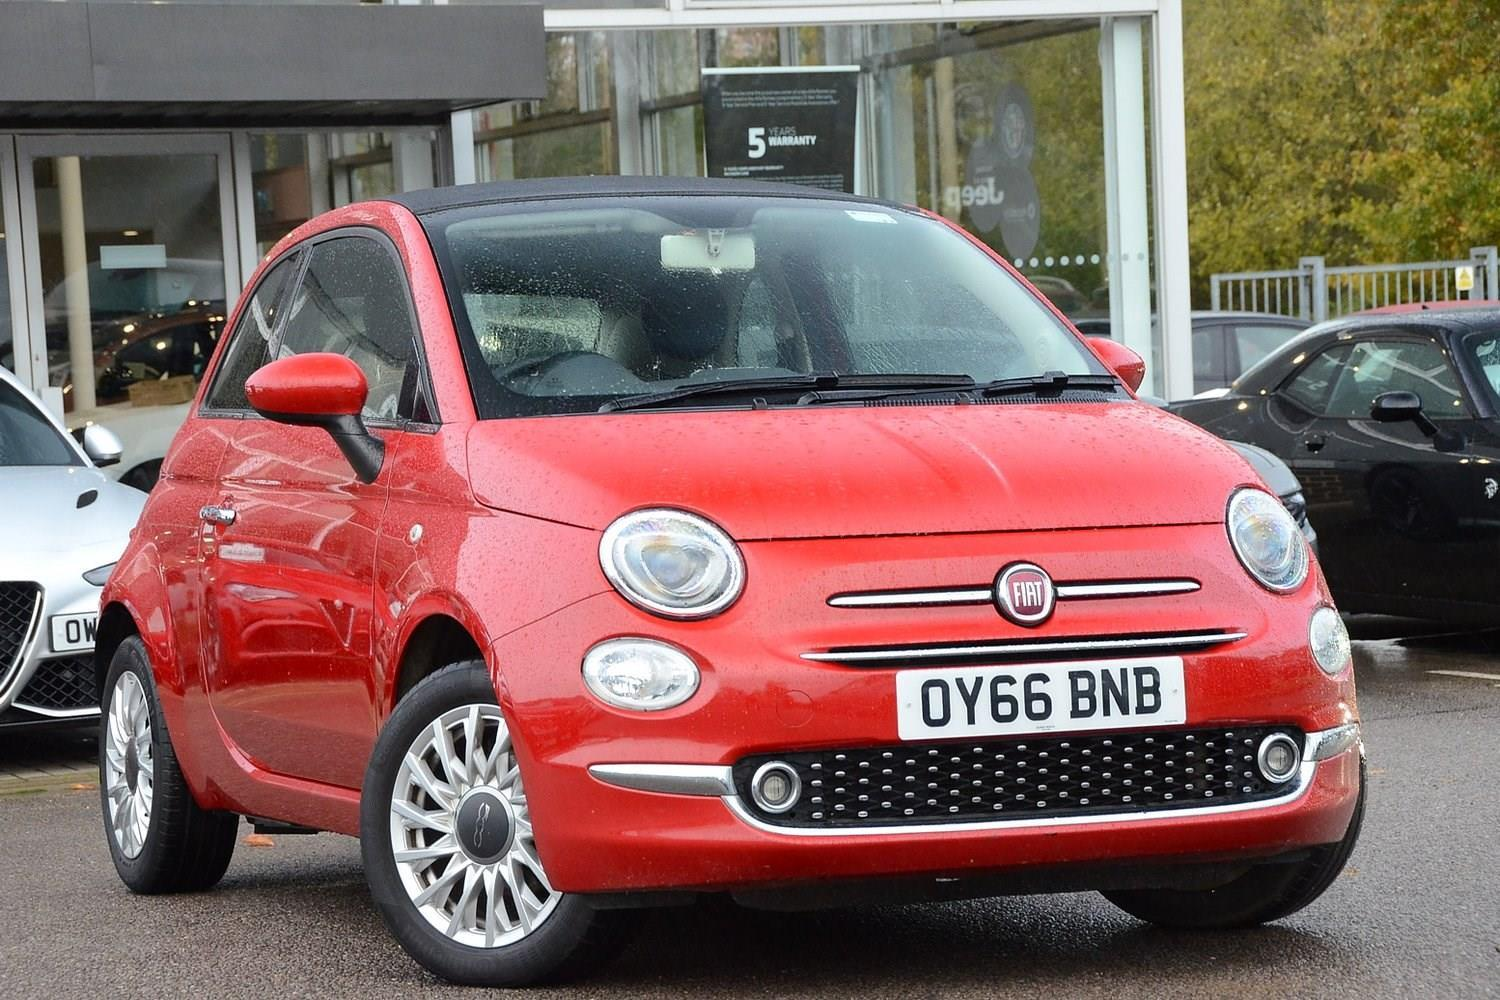 Fiat 500 1.2 Lounge Convertible Petrol Pasodoble Red